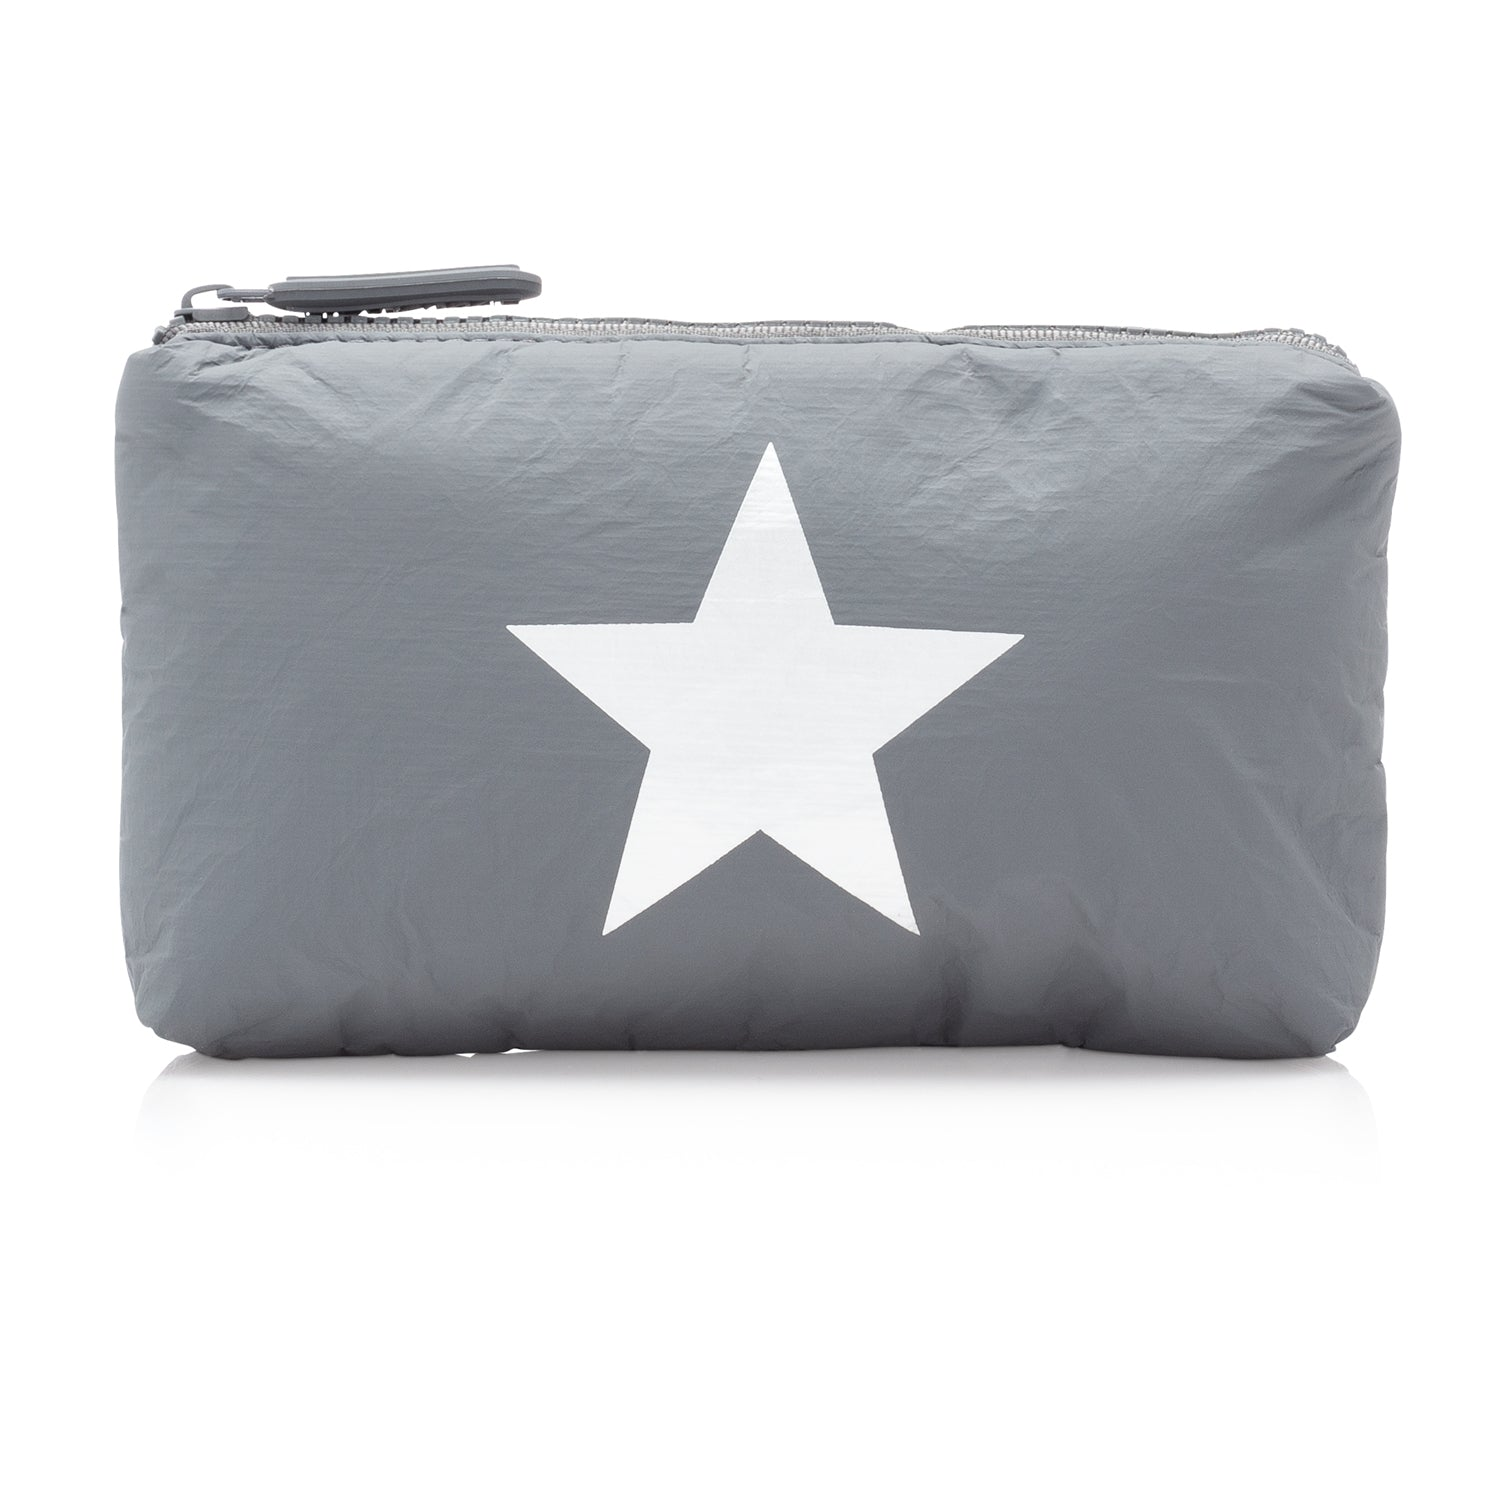 Mini Padded Pack - Cool Gray with Silver Star